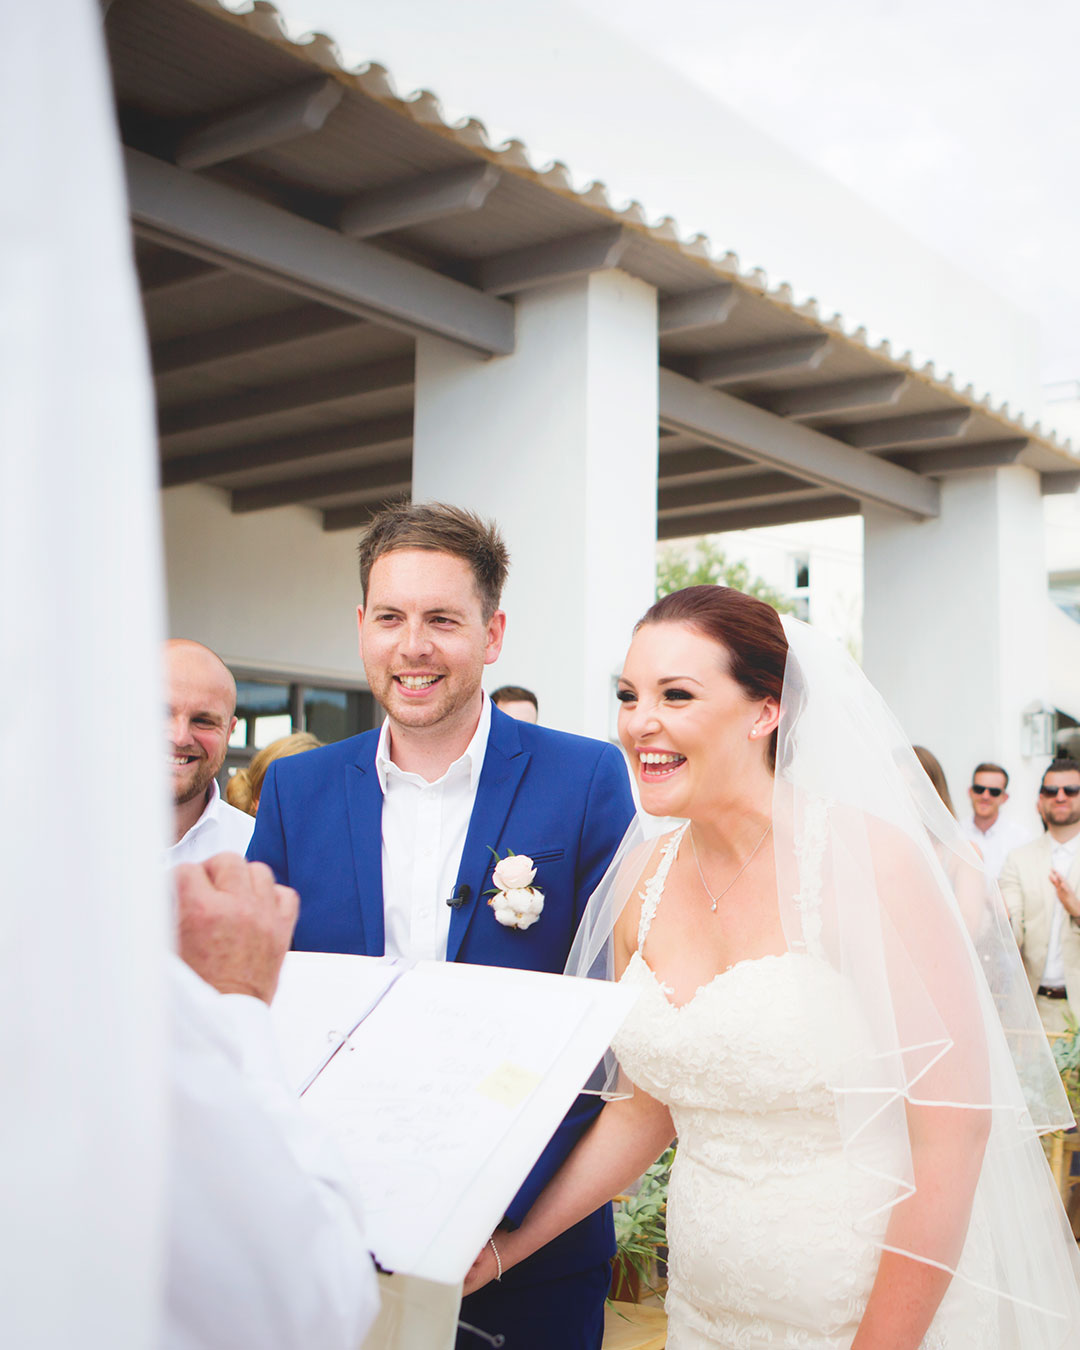 Destination wedding ceremony in Ibiza